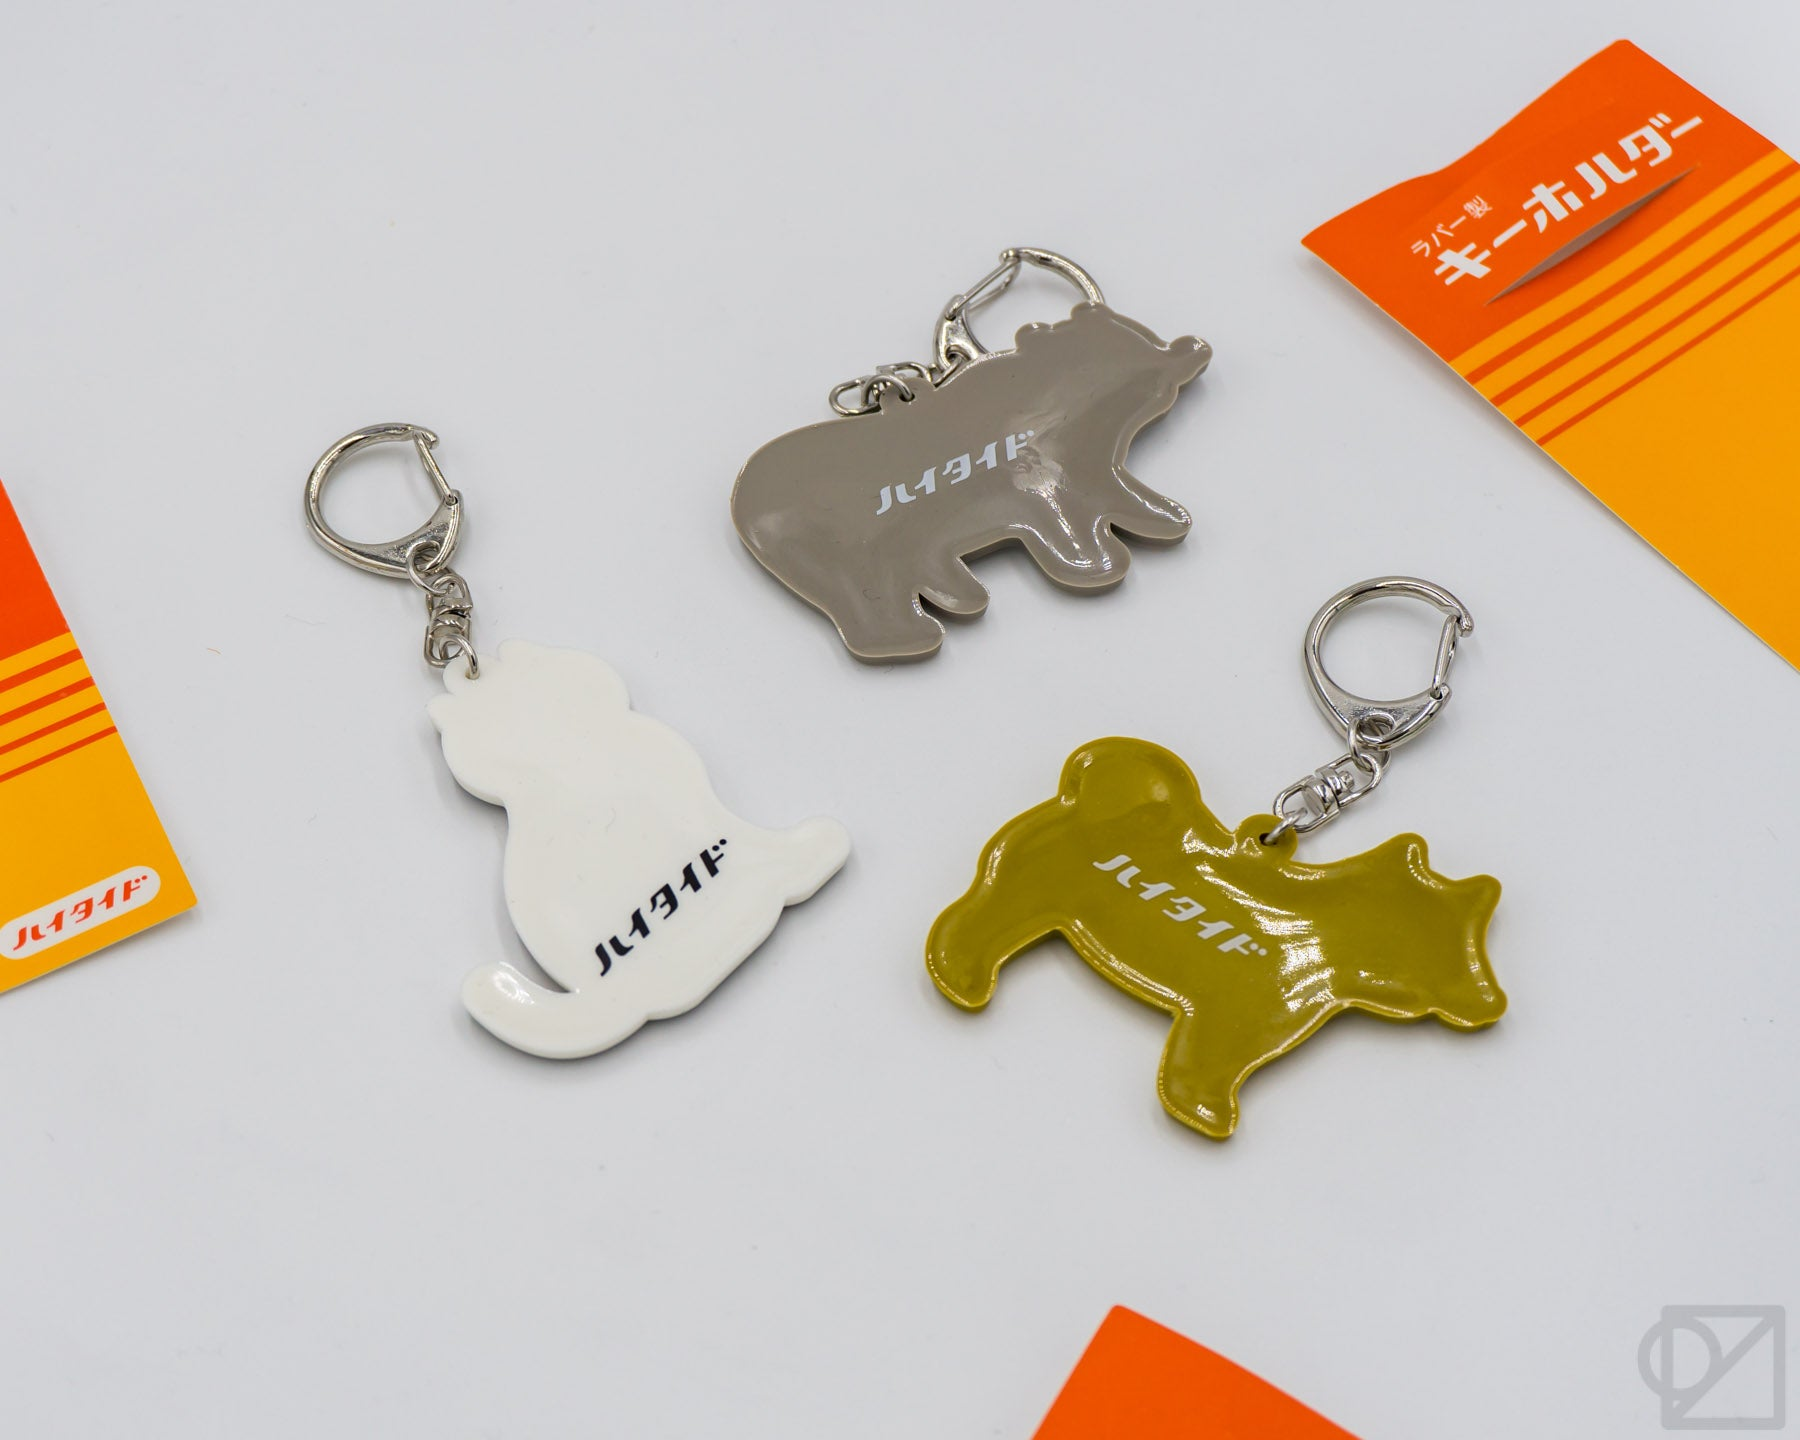 HIGHTIDE Retro Animal Rubber Keychain